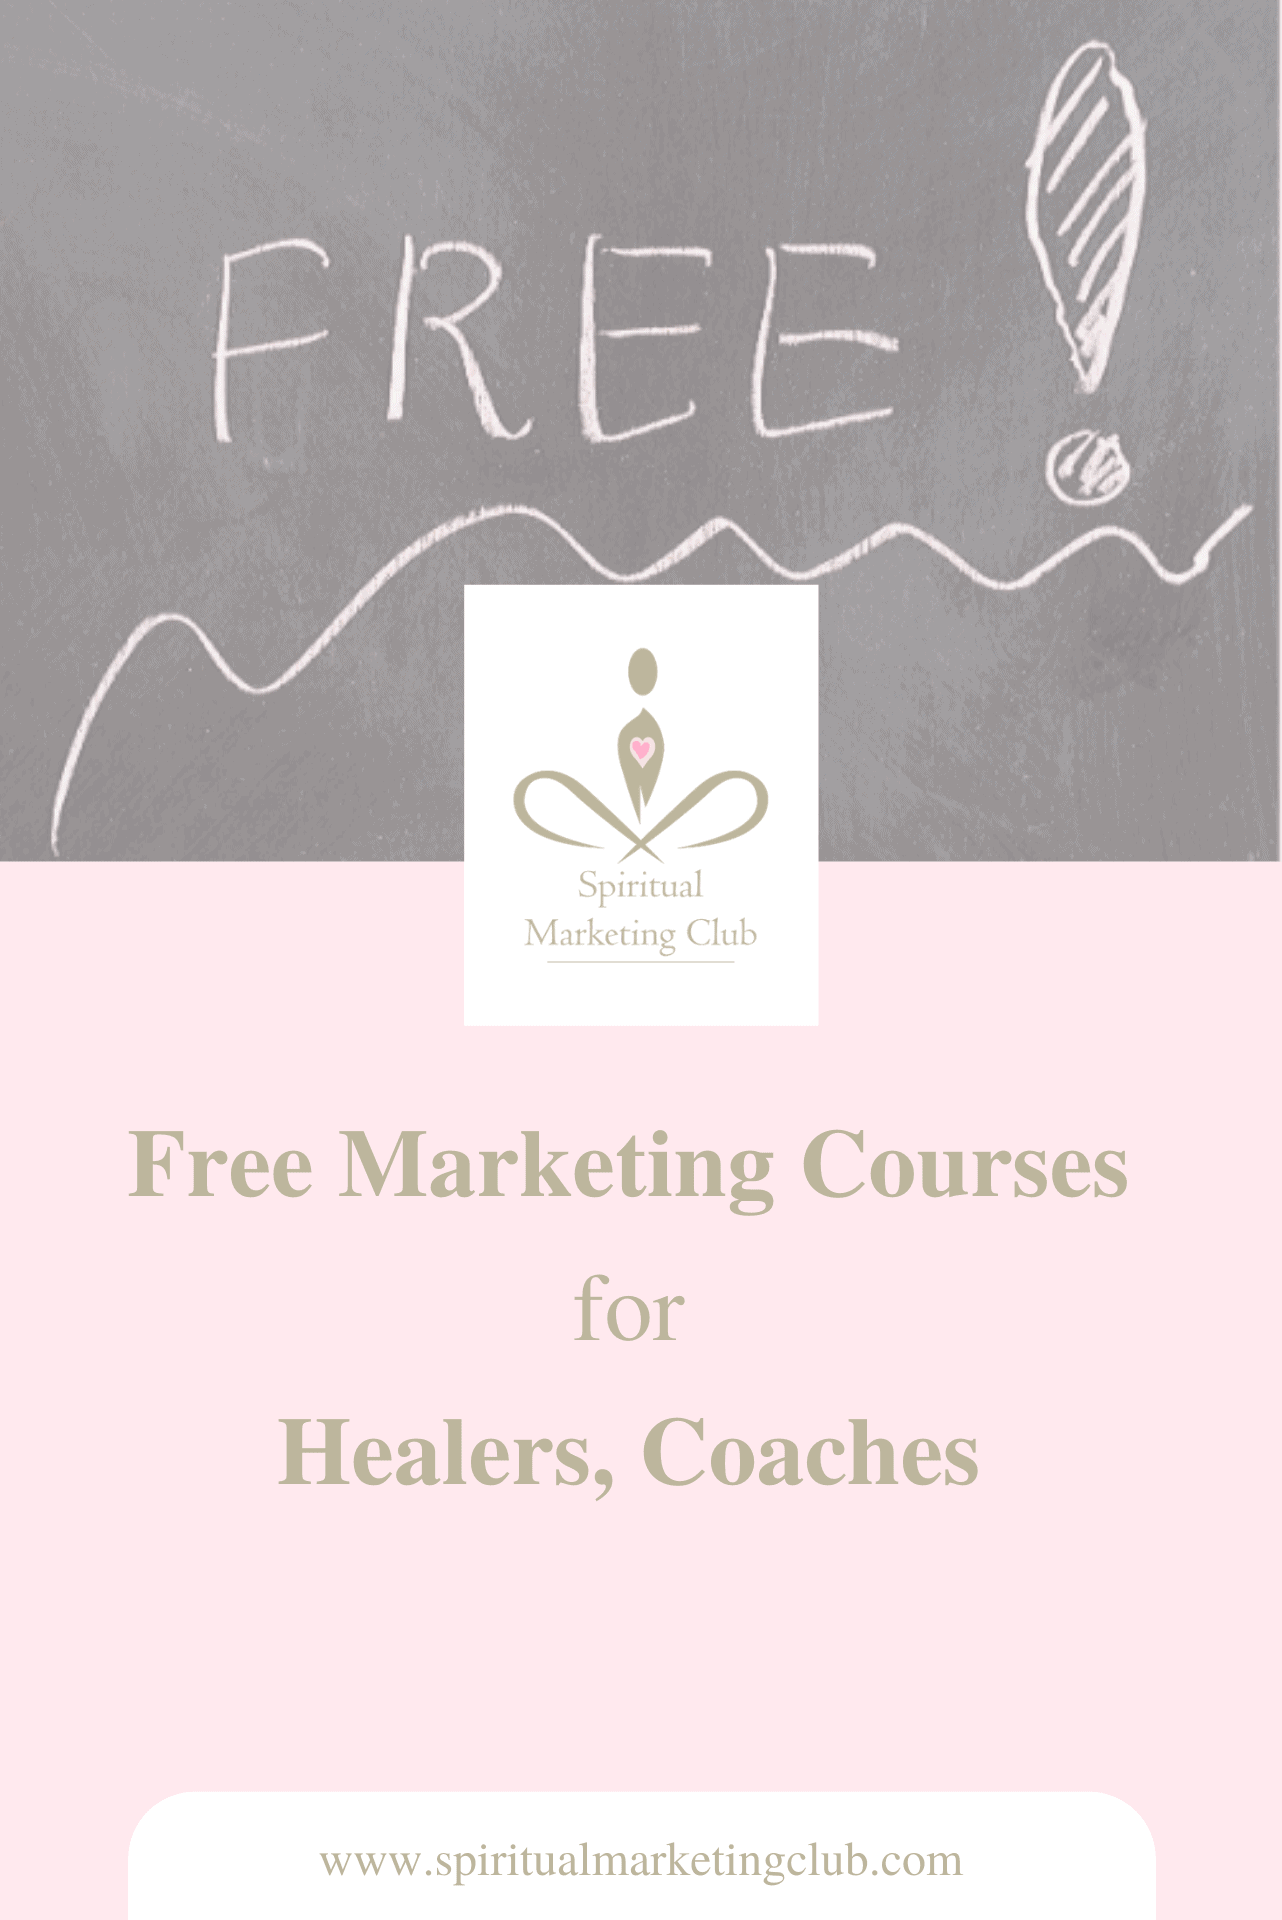 free marketing courses for healers, coaches, holistic and spiritual businesses who want to attract more clients and customers spiritual marketing club